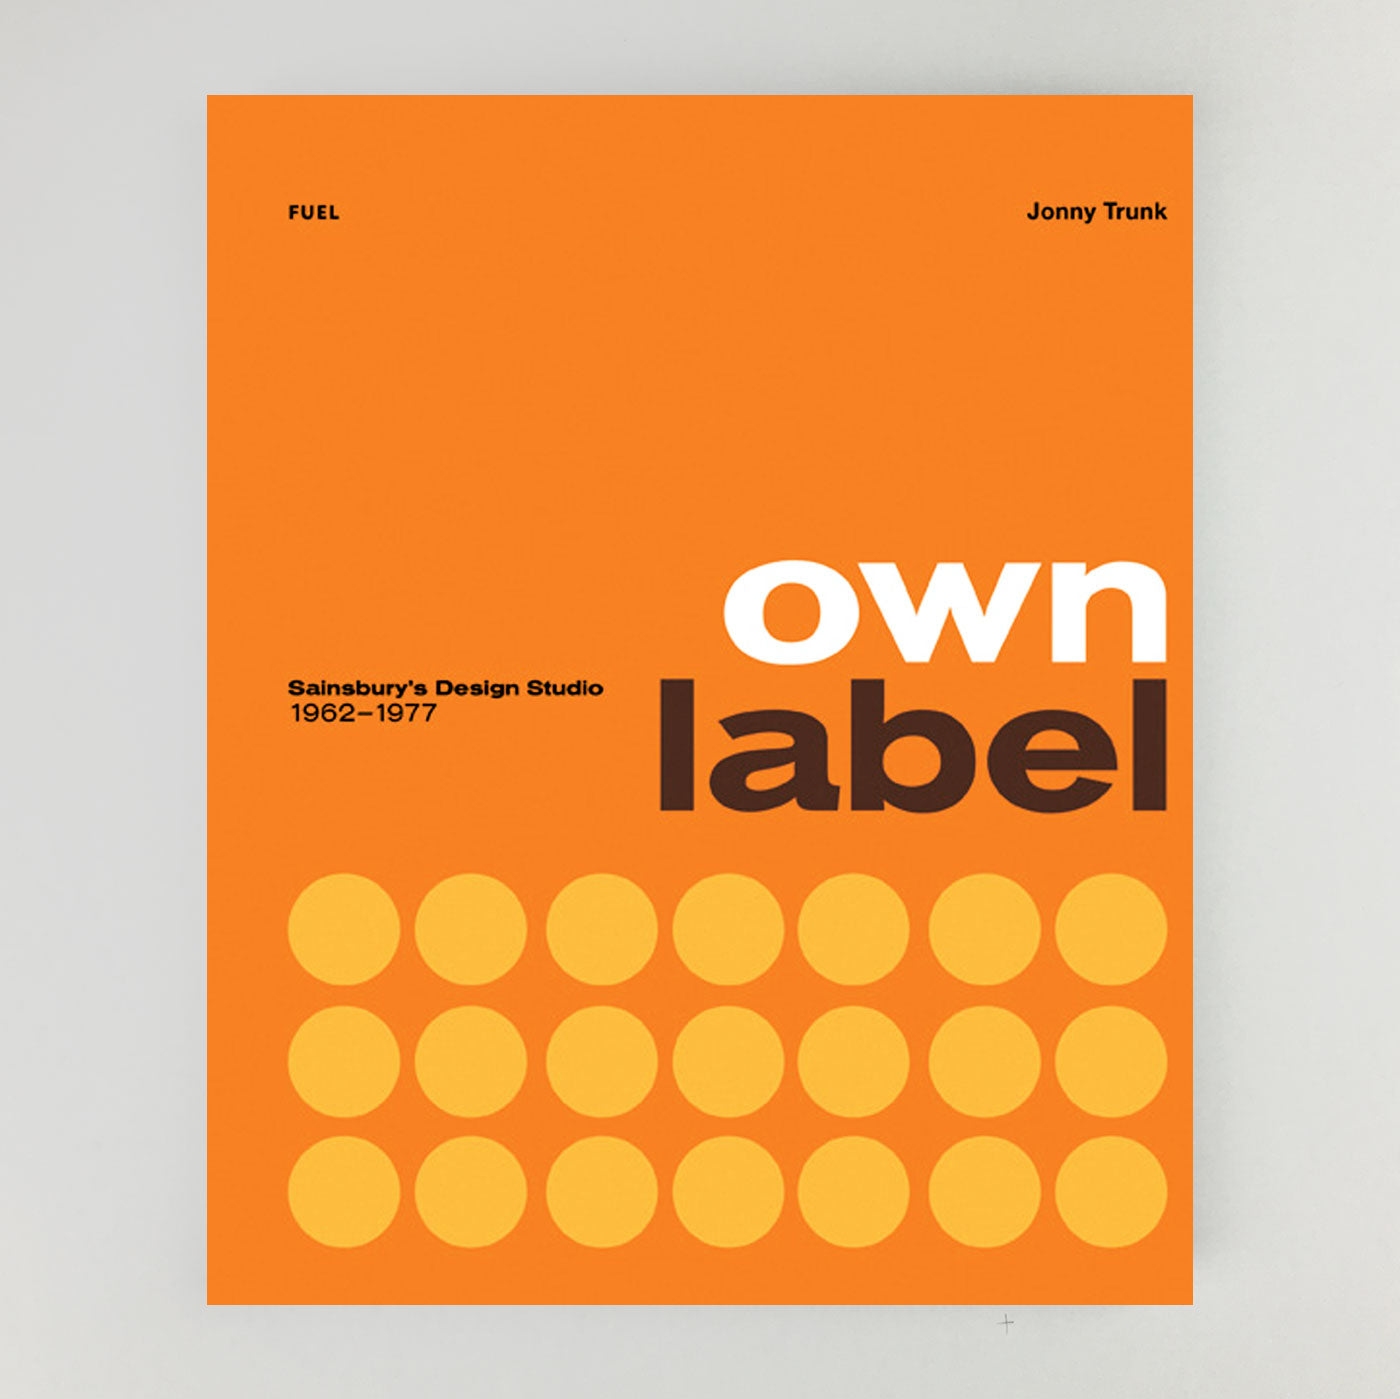 Own Label: Sainsbury's Design Studio 1962-1977 - Colours May Vary